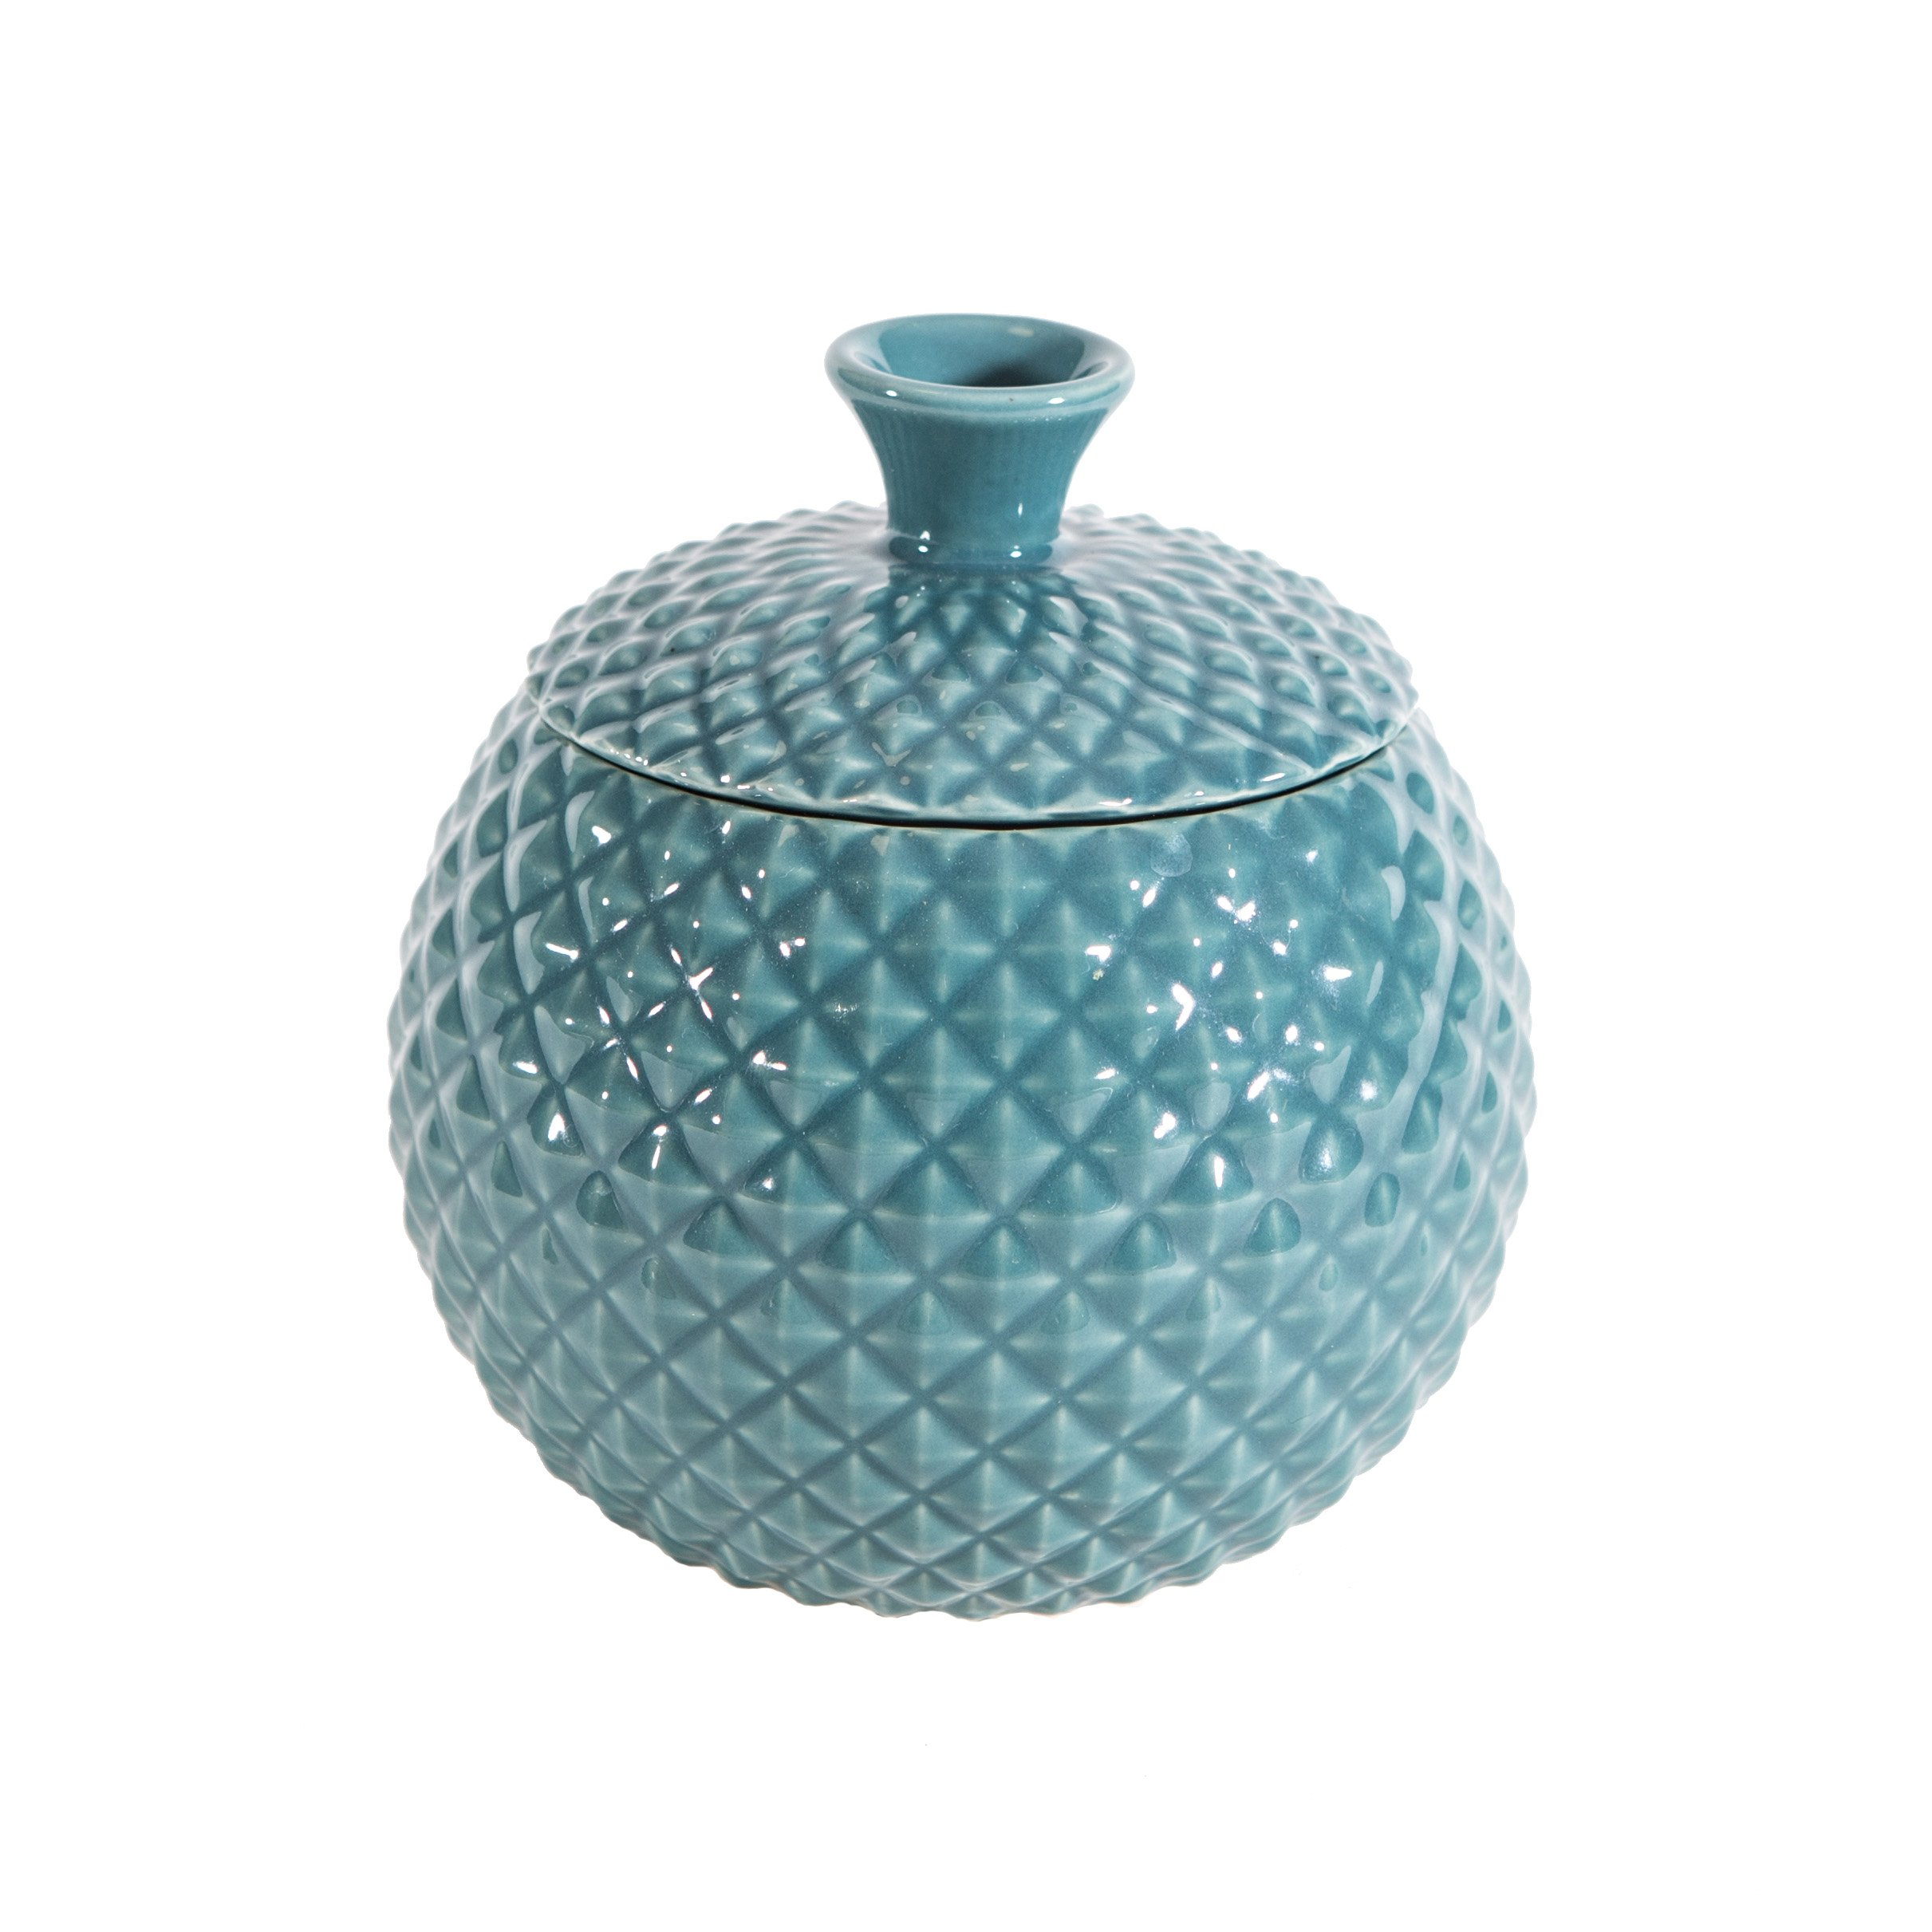 Fruit Fly Catcher Trap for Home Kitchens, Natural Pest Control, Chemical free, Nontoxic, Decorative, Effective, Kid and Pet Friendly (Turquoise)